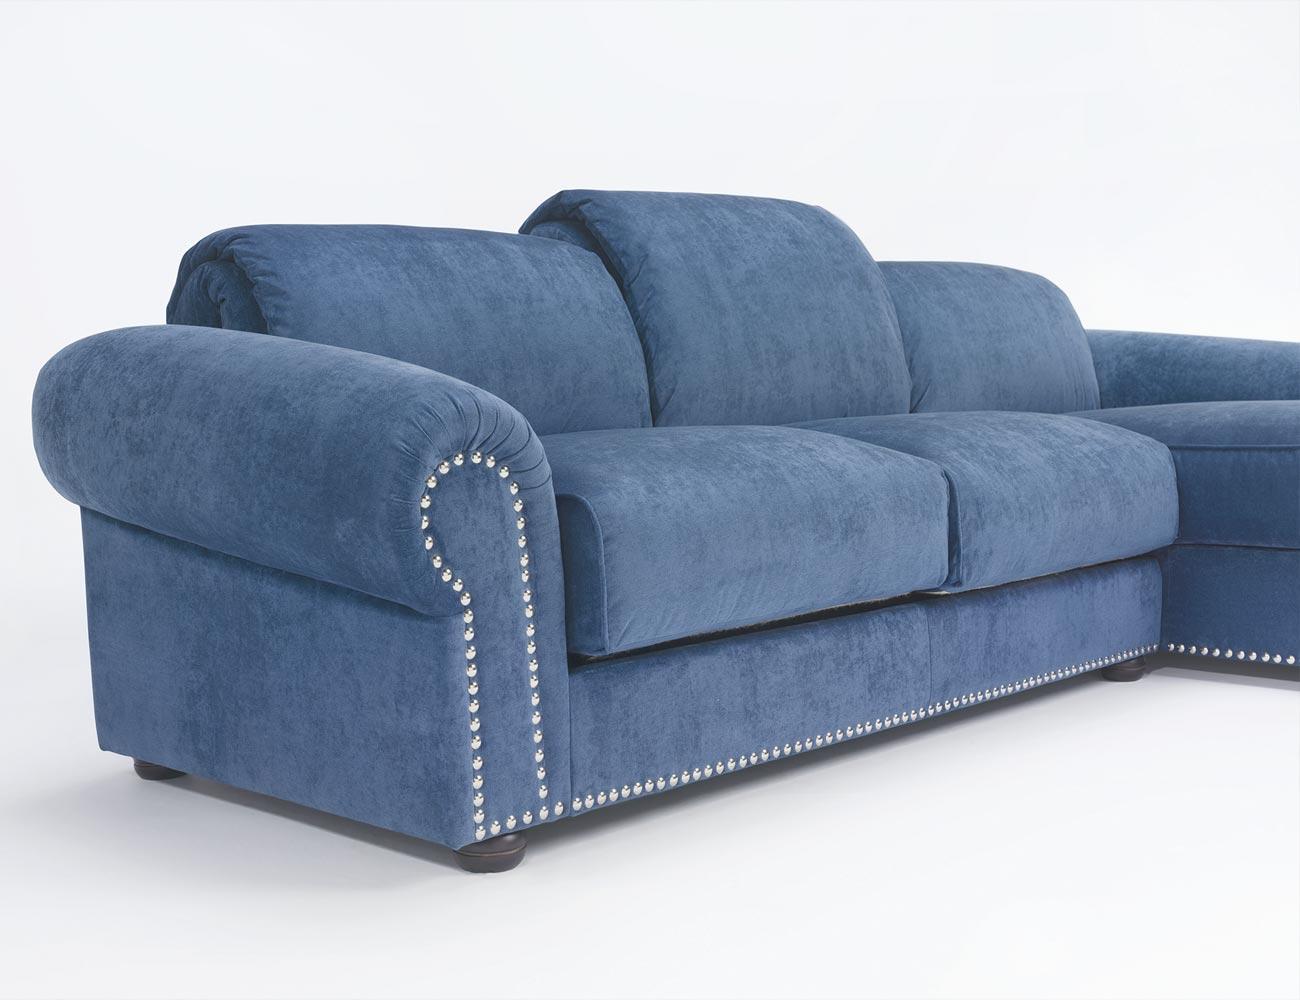 Sofa chaiselongue gran lujo decorativo azul 110